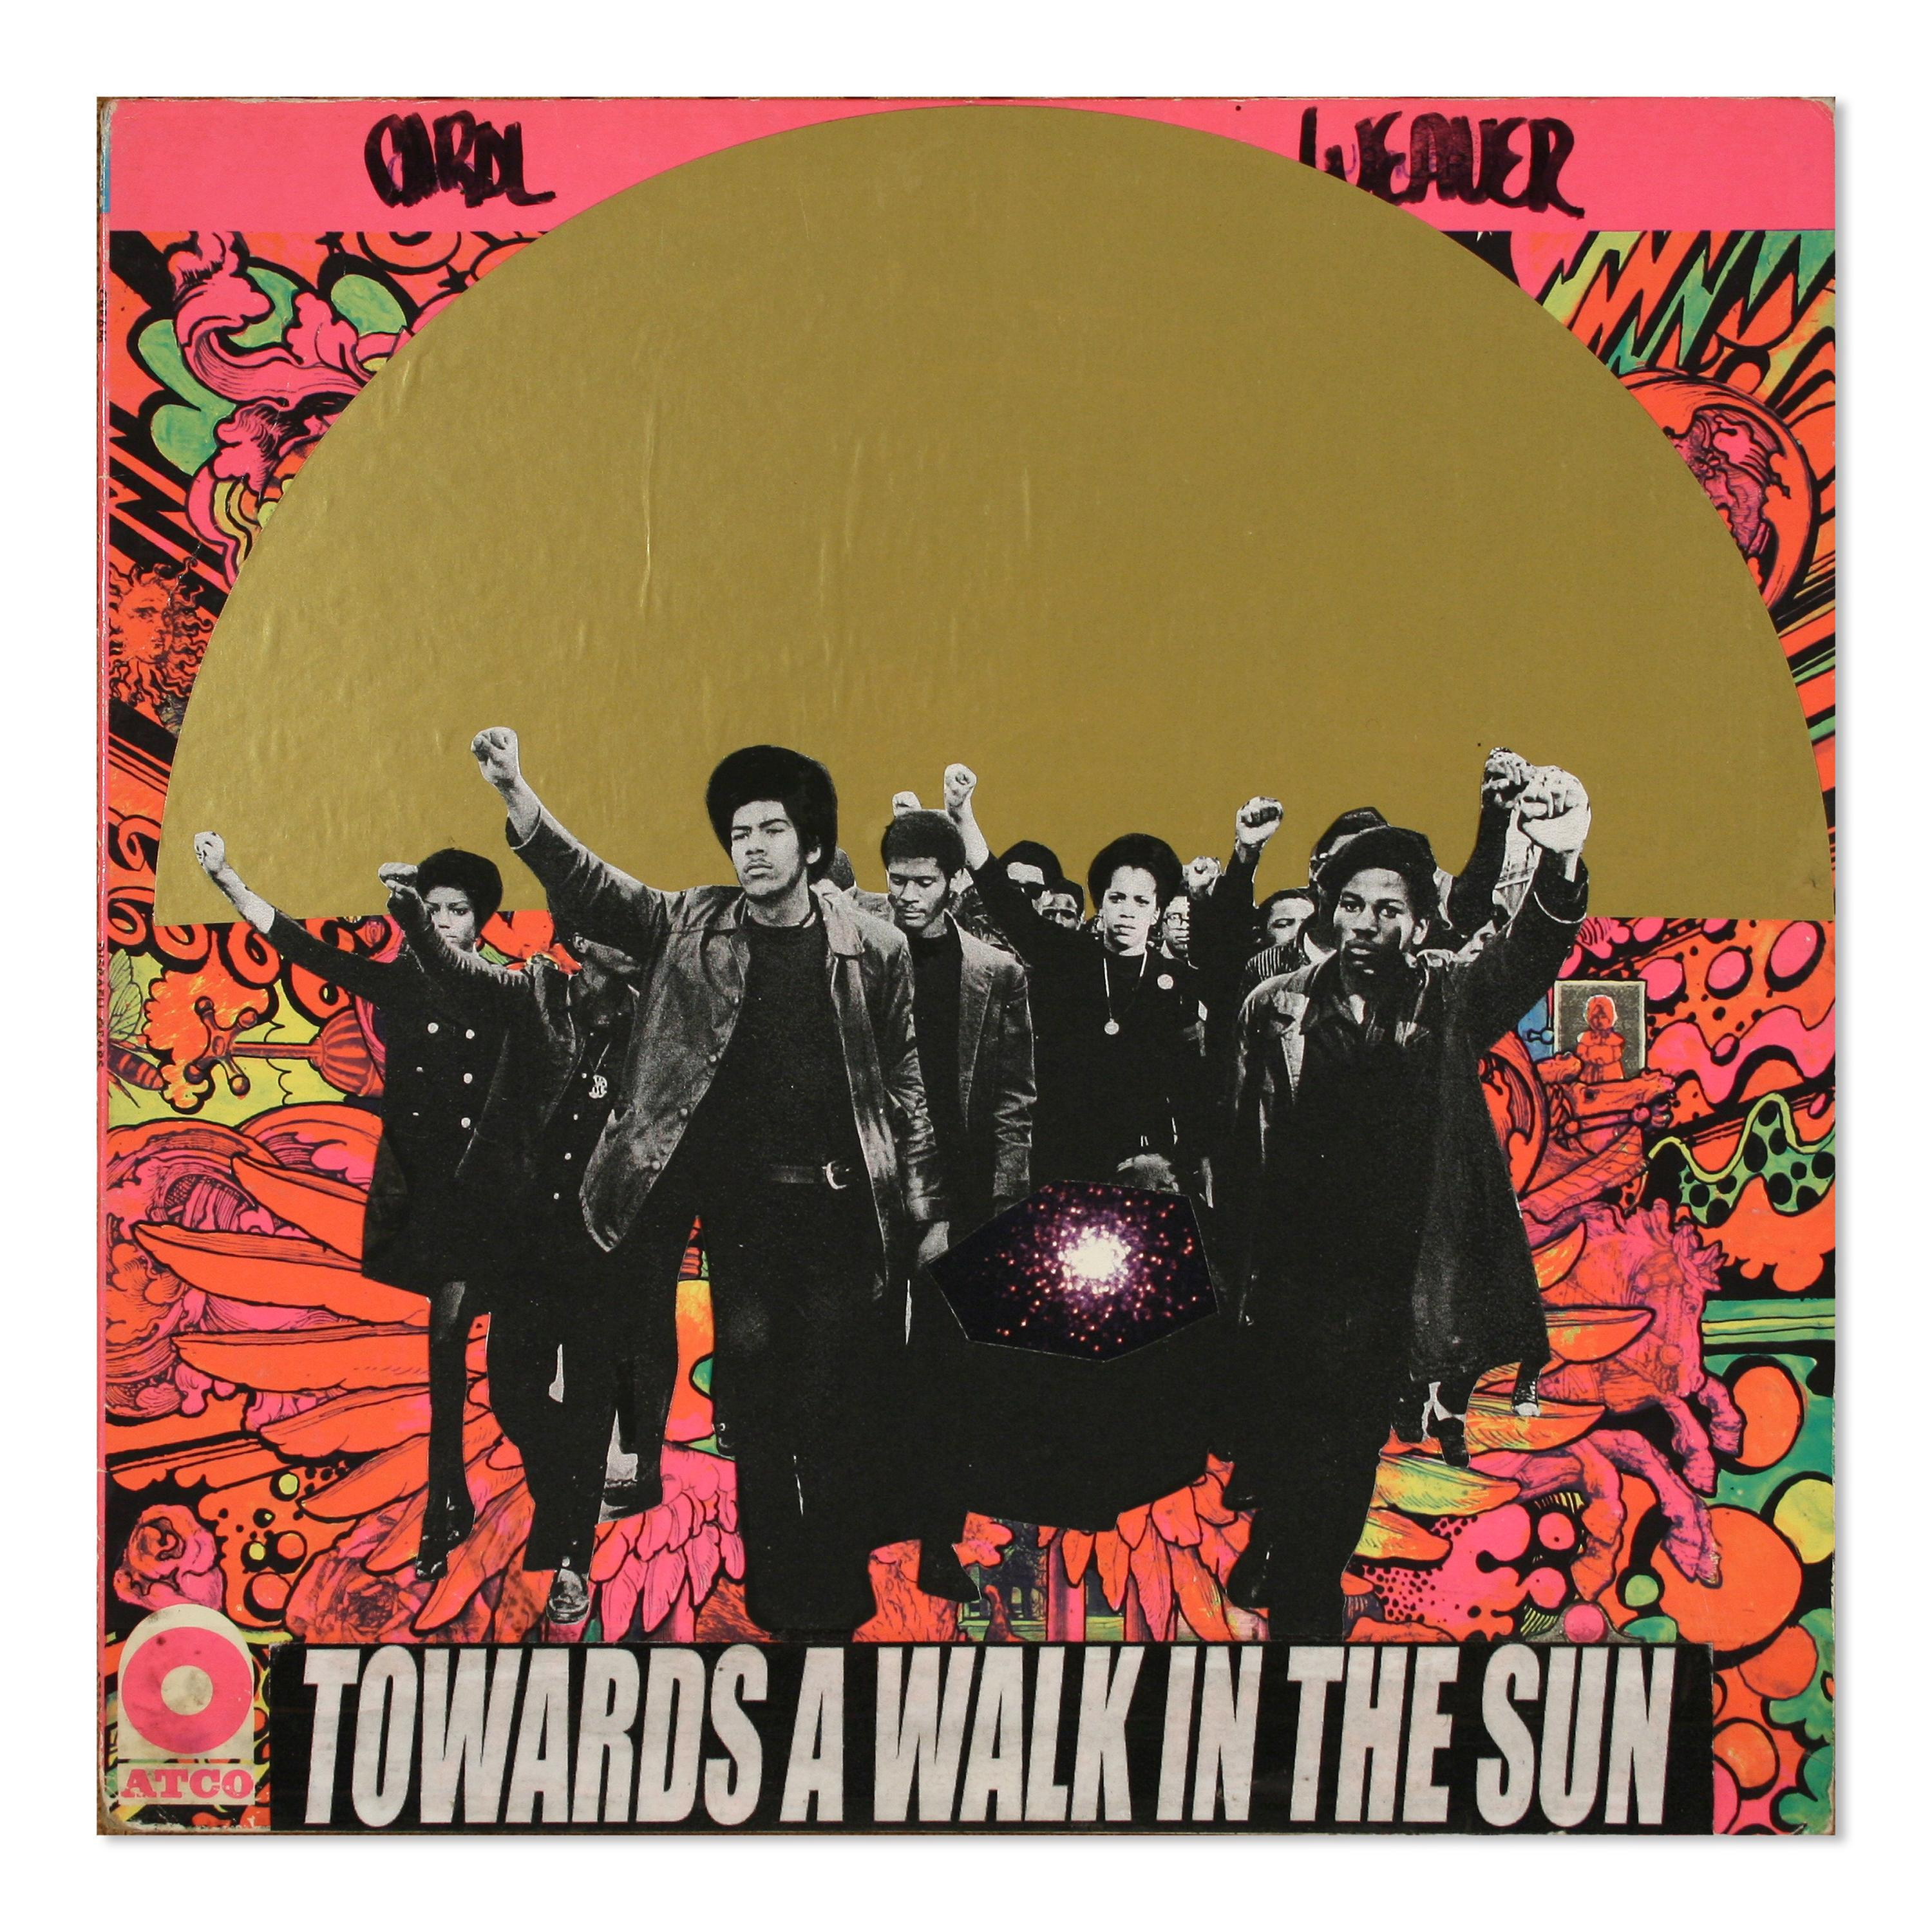 """A collage with a vivid, patterned background depicts a black-and-white group of men and women marching with their fists in the air, a golden semicircle that resembles the setting sun, and a text at the bottom that reads """"Towards a walk in the sun."""""""